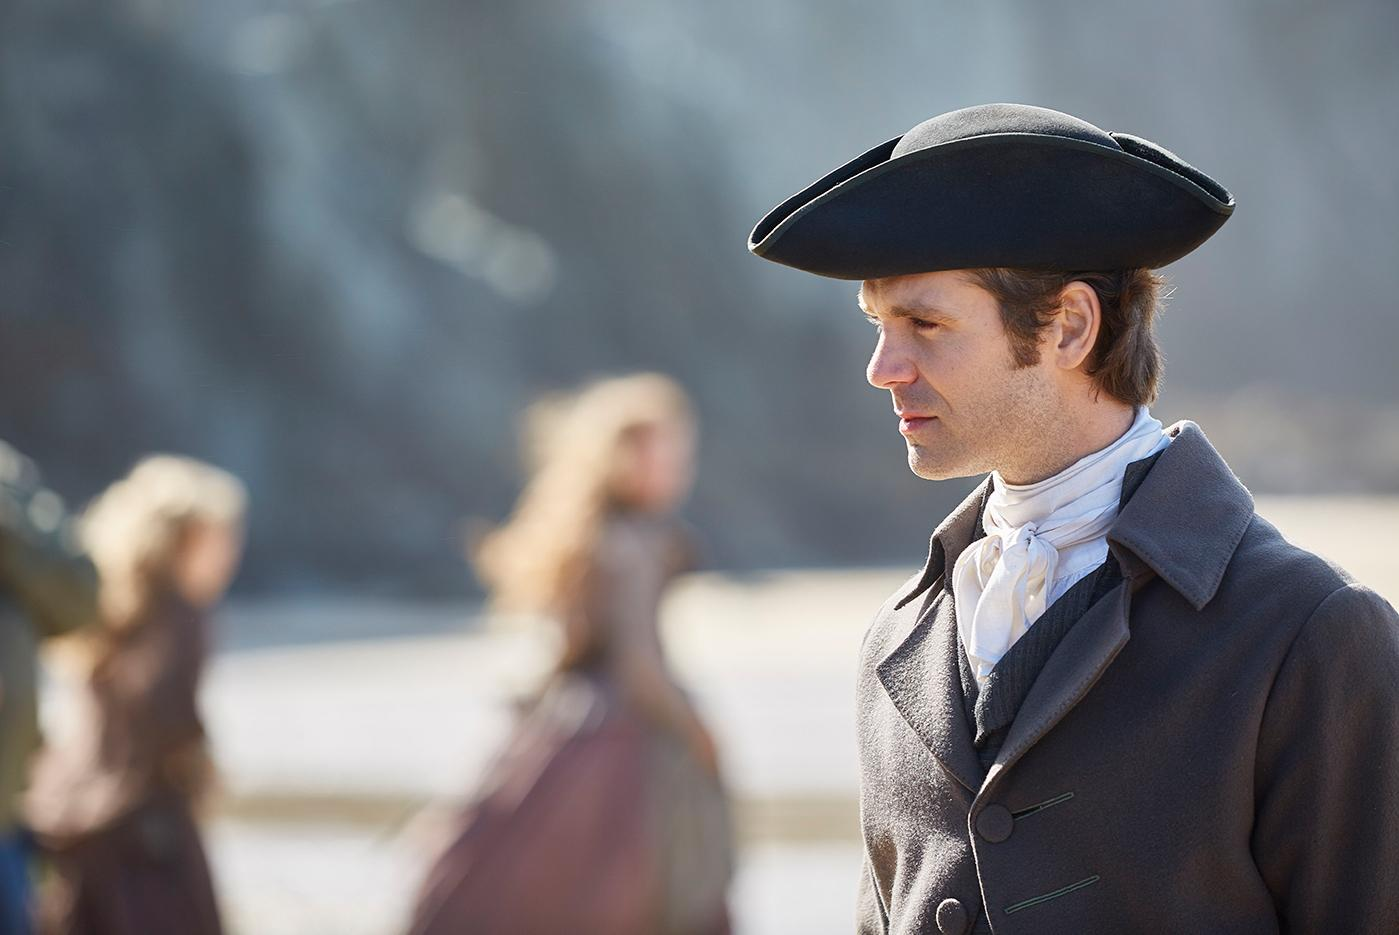 Luke Norris as Dwight in Poldark. Photo: Mammoth Screen for BBC and MASTERPIECE